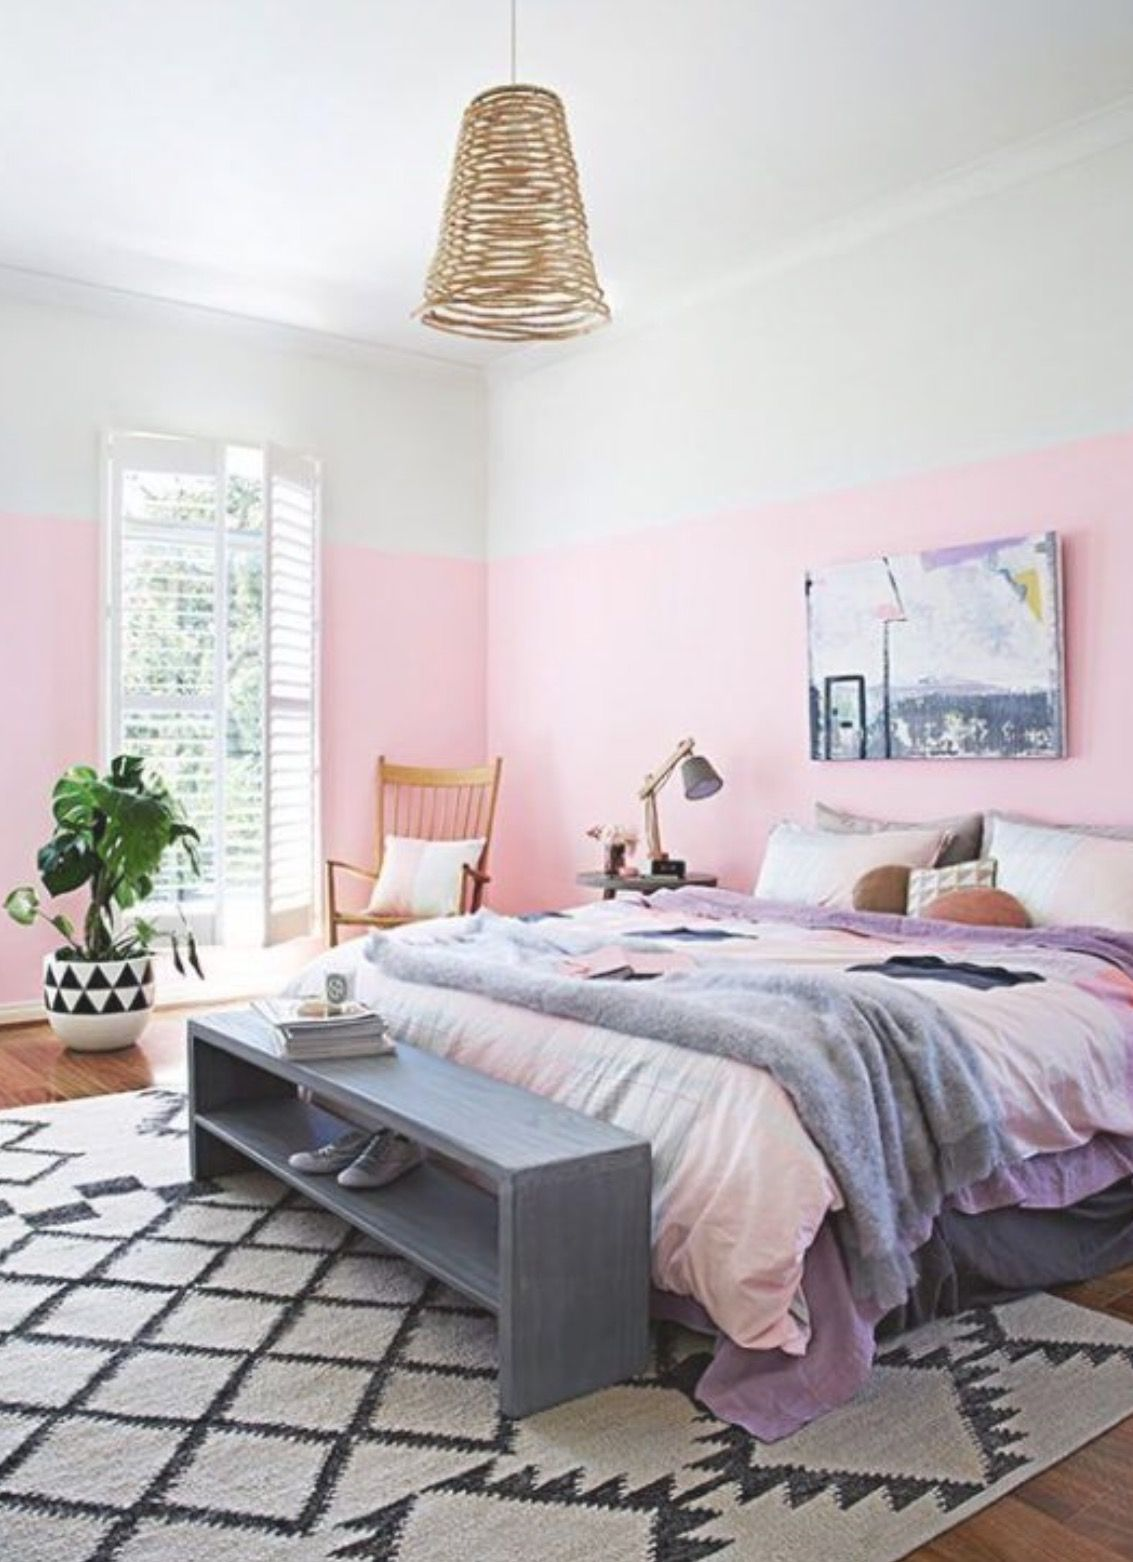 A bicolor bedroom wall - 10 Pink ideas for your dreamy home. Forget ...